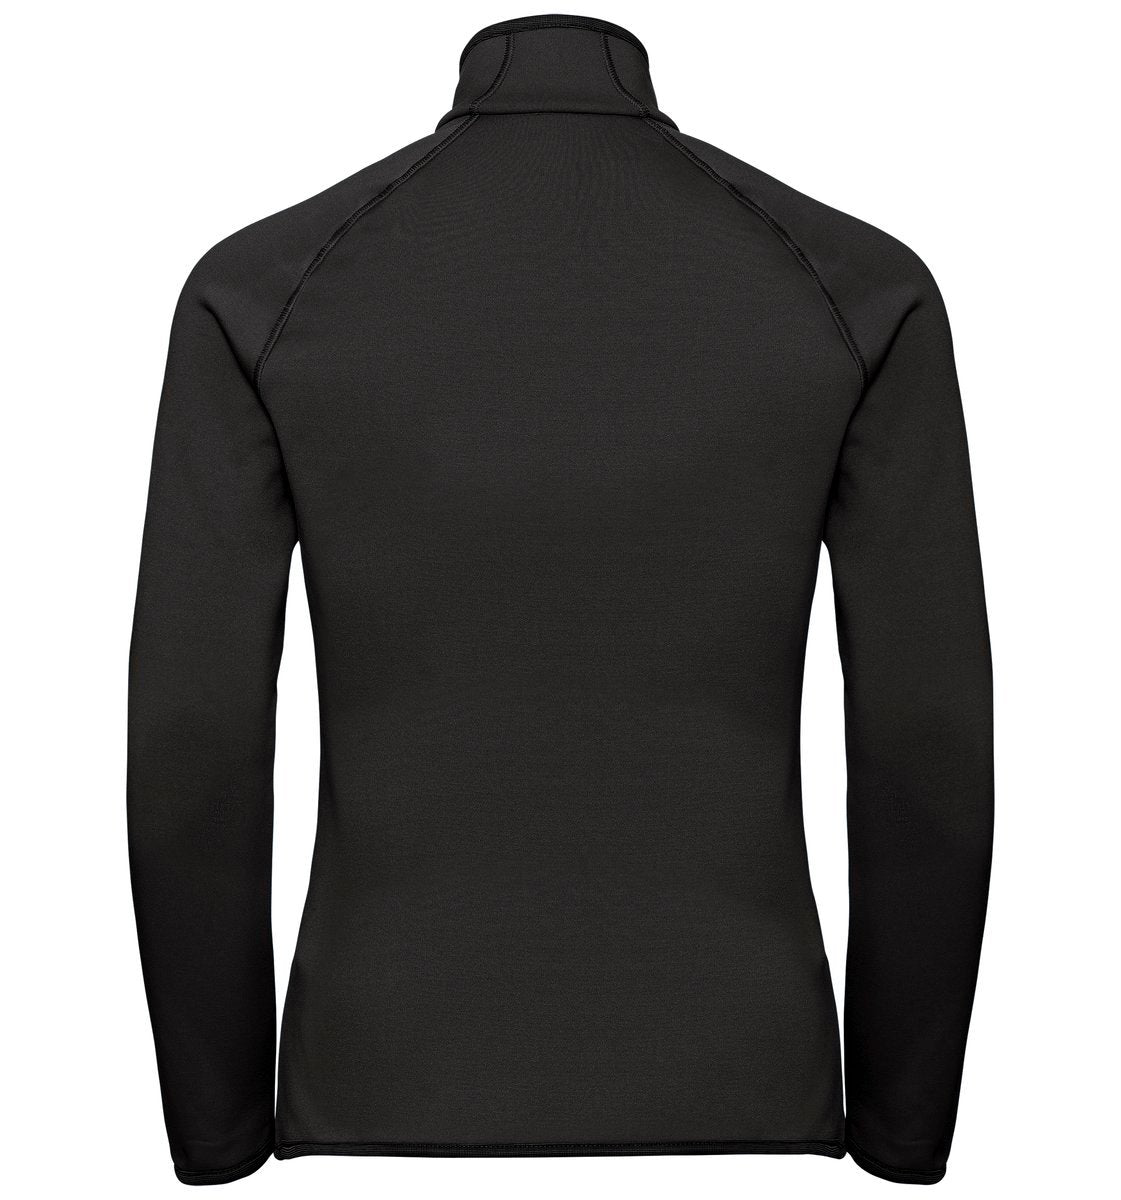 Odlo Women's CARVE CERAMIWARM Full Zip Midlayer